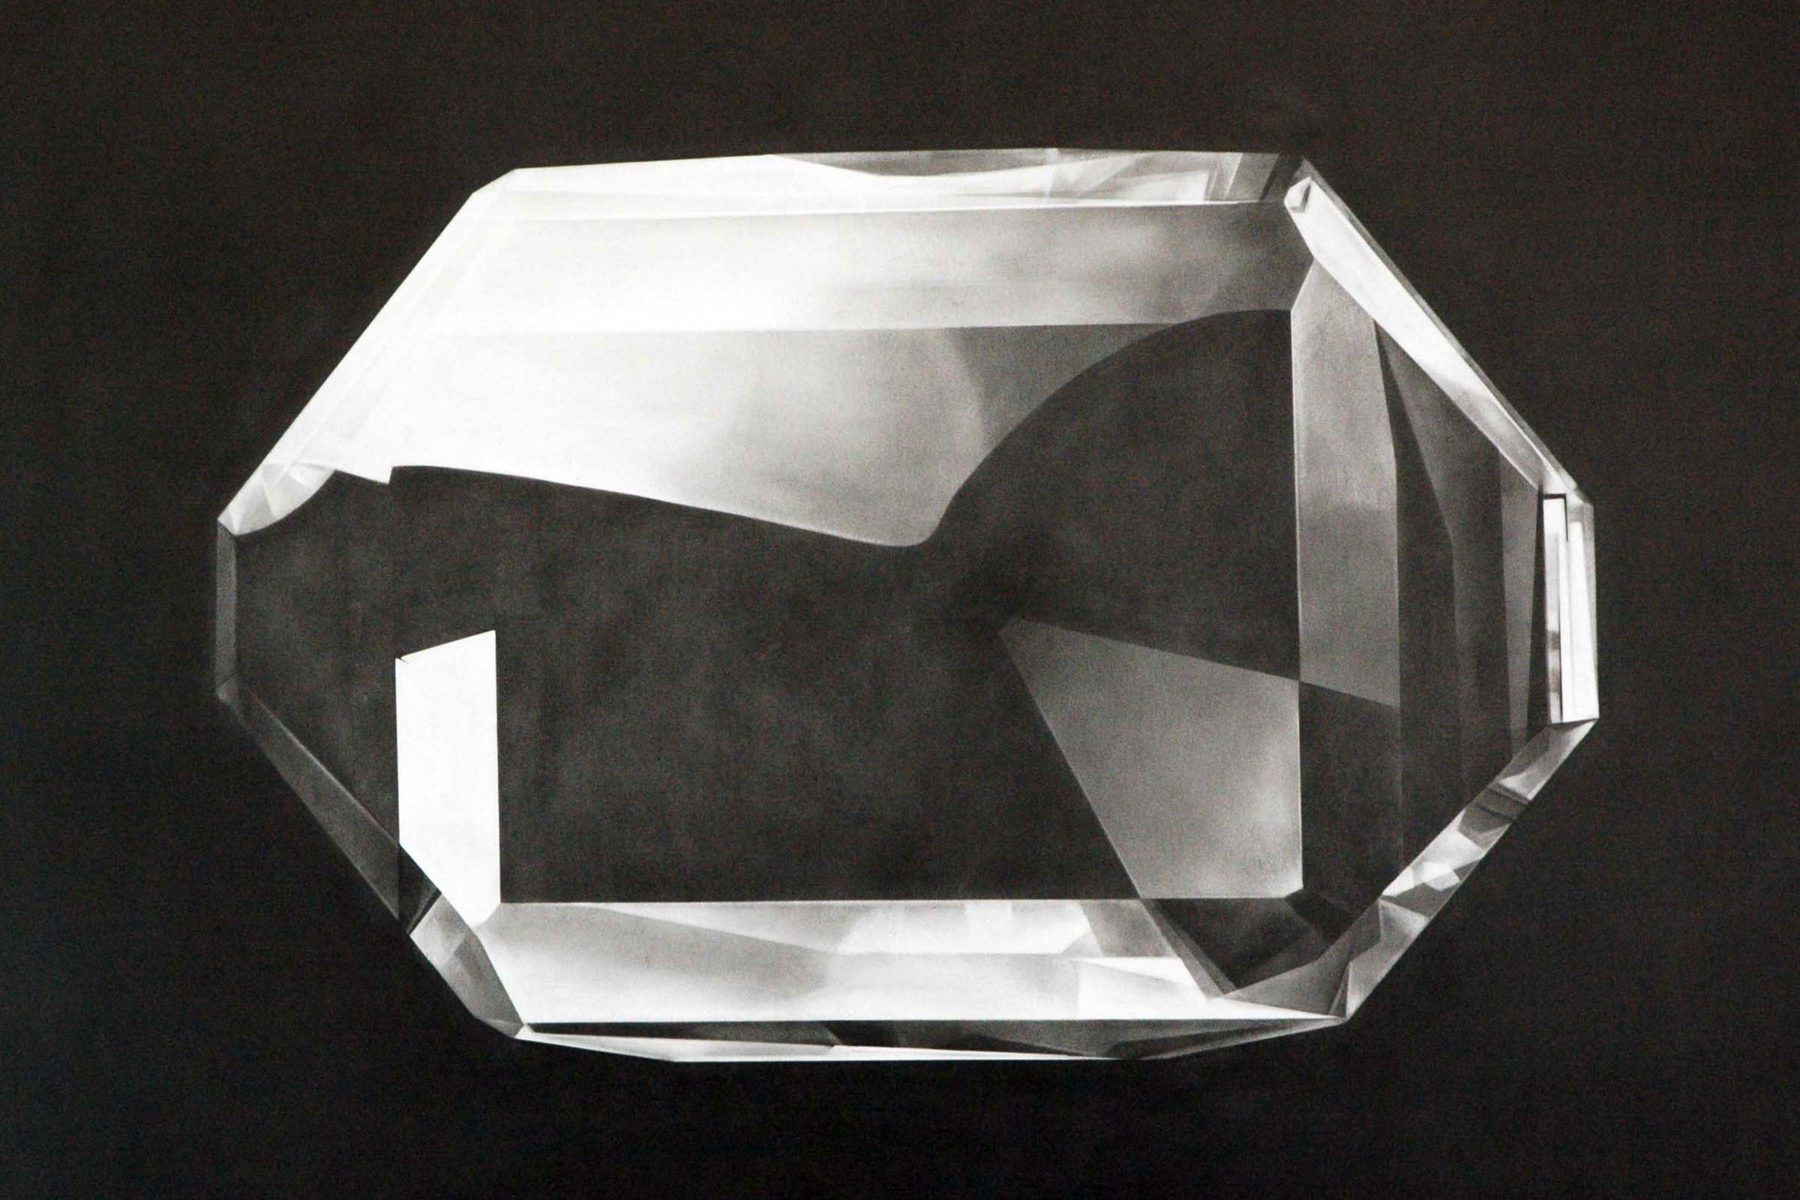 Serse, Diamond, 2007, drawing on paper, 100 x 70 cm